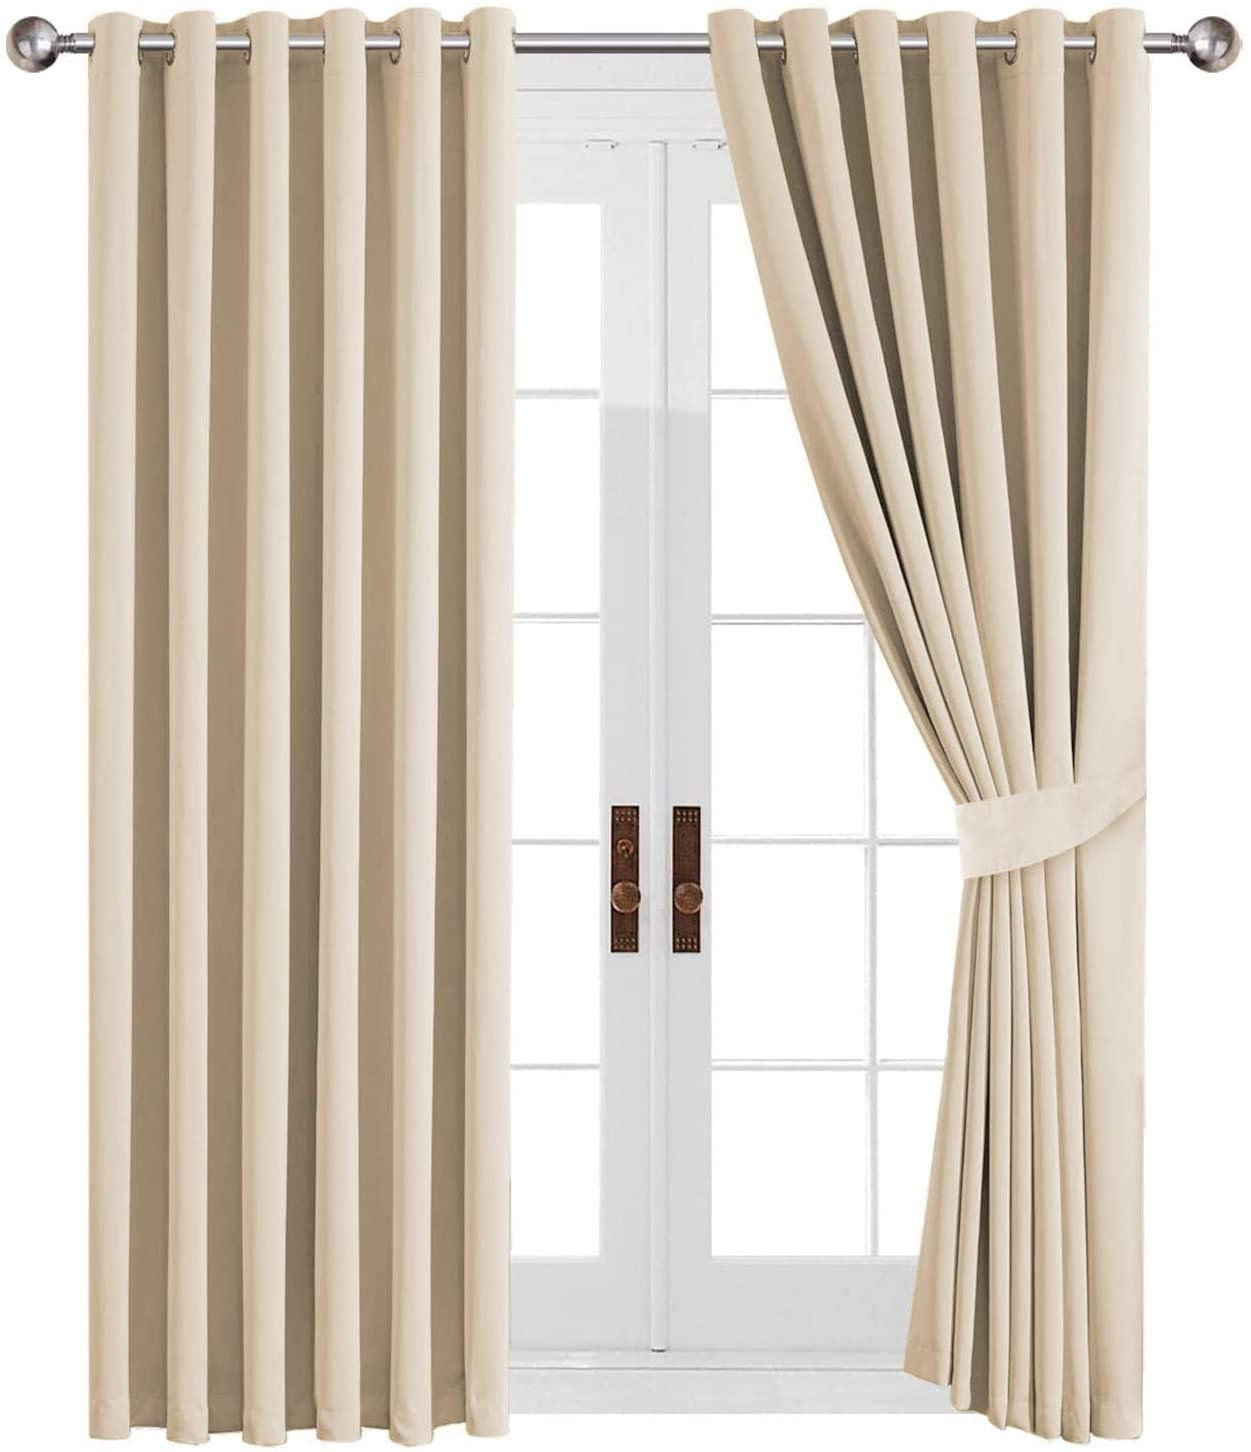 66x72/'/' Thermal Blackout Curtains Ready Made Eyelet Ring Energy Saving+Tie Backs